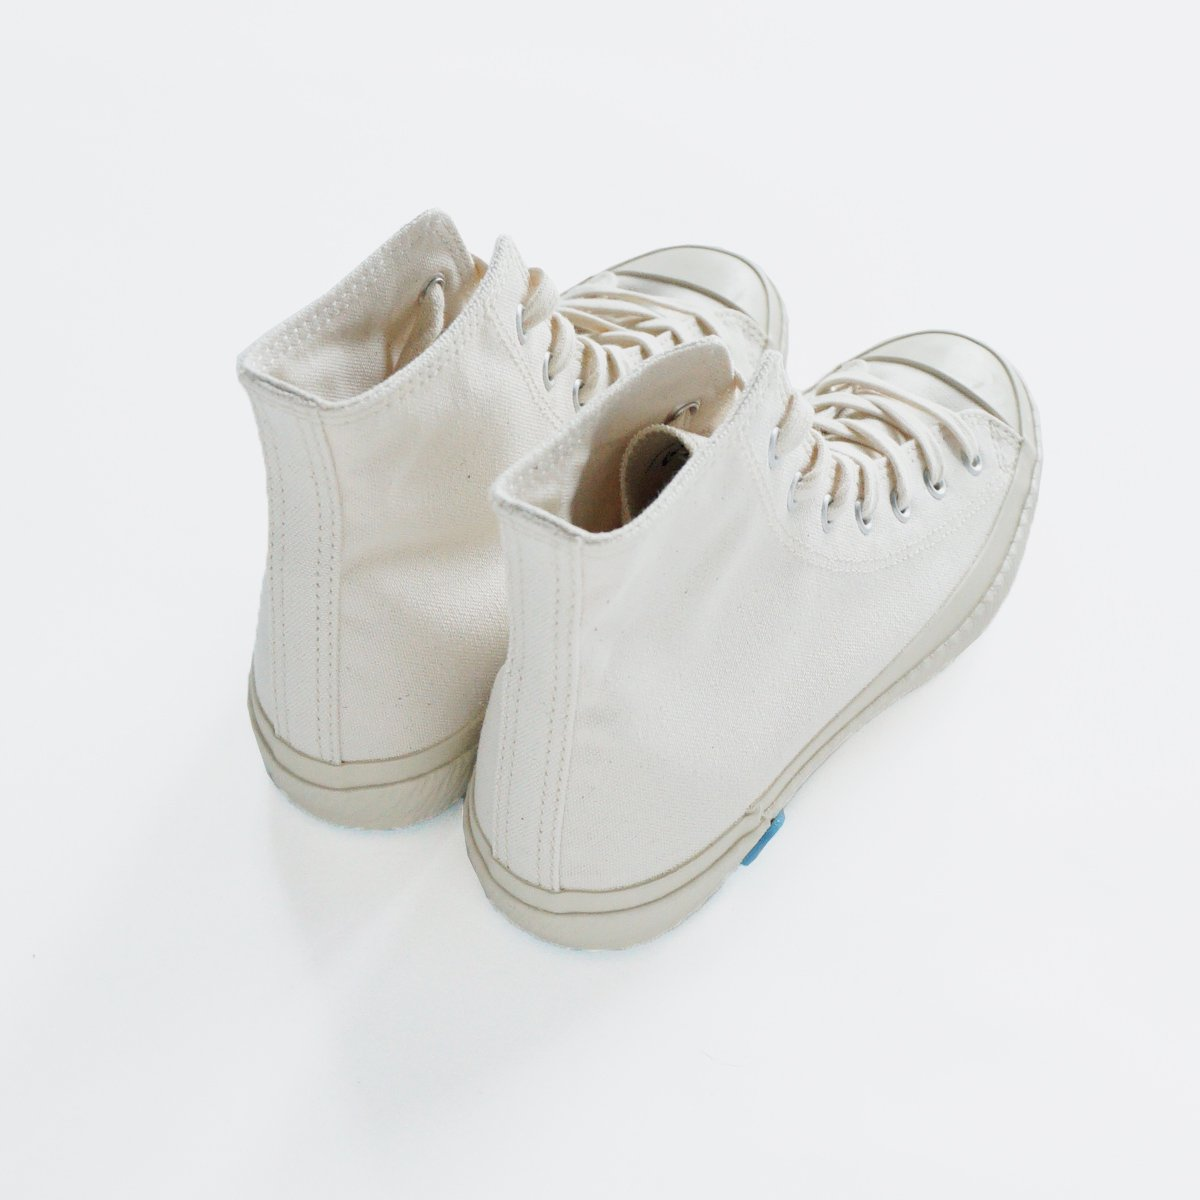 SHOES LIKE POTTERY CANVAS SNEAKER HI (WHITE)4